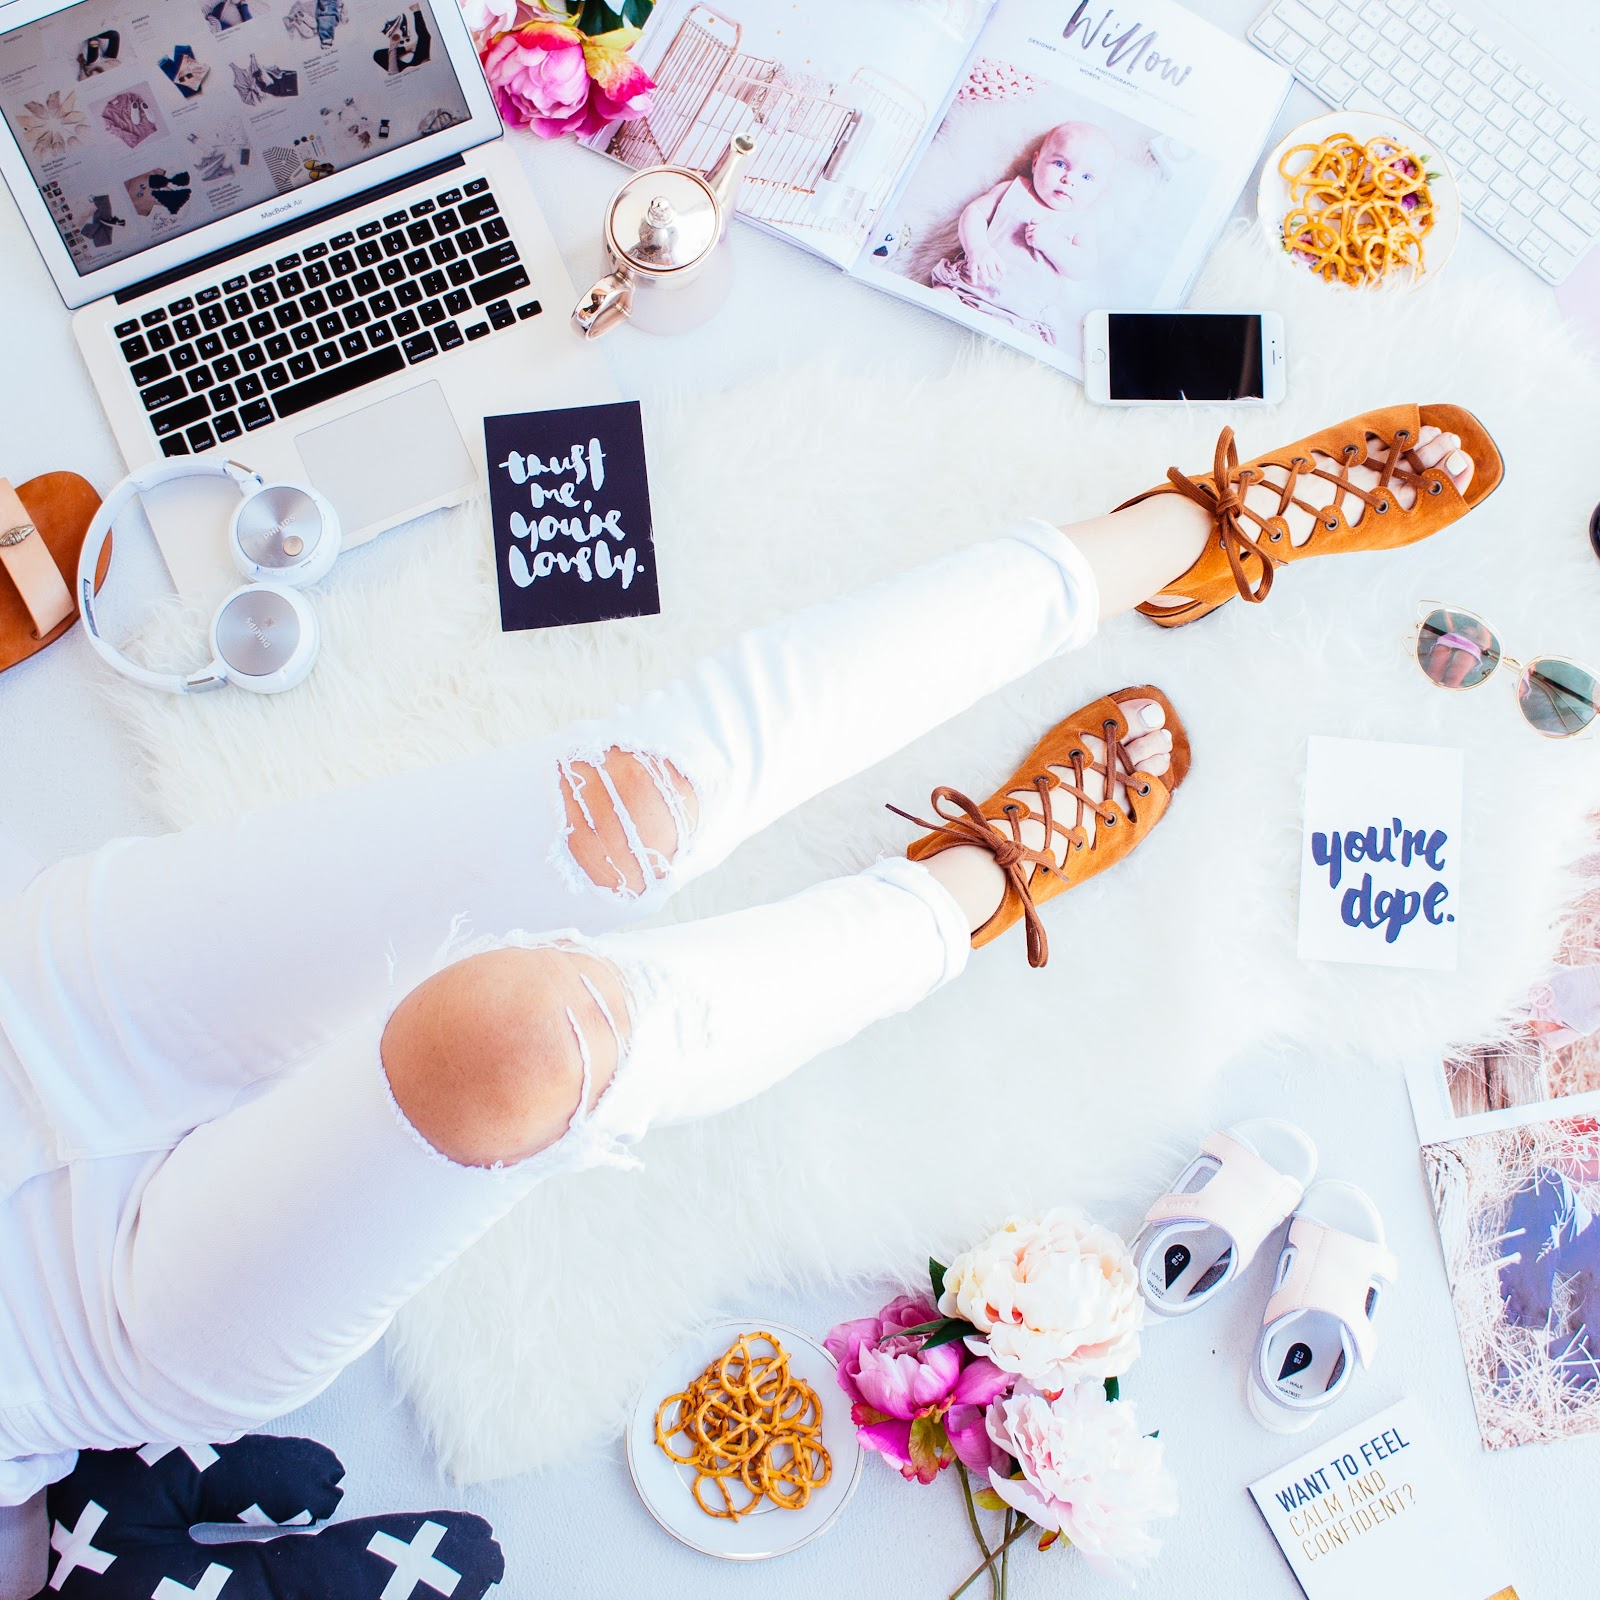 Top 5 small business ideas for women